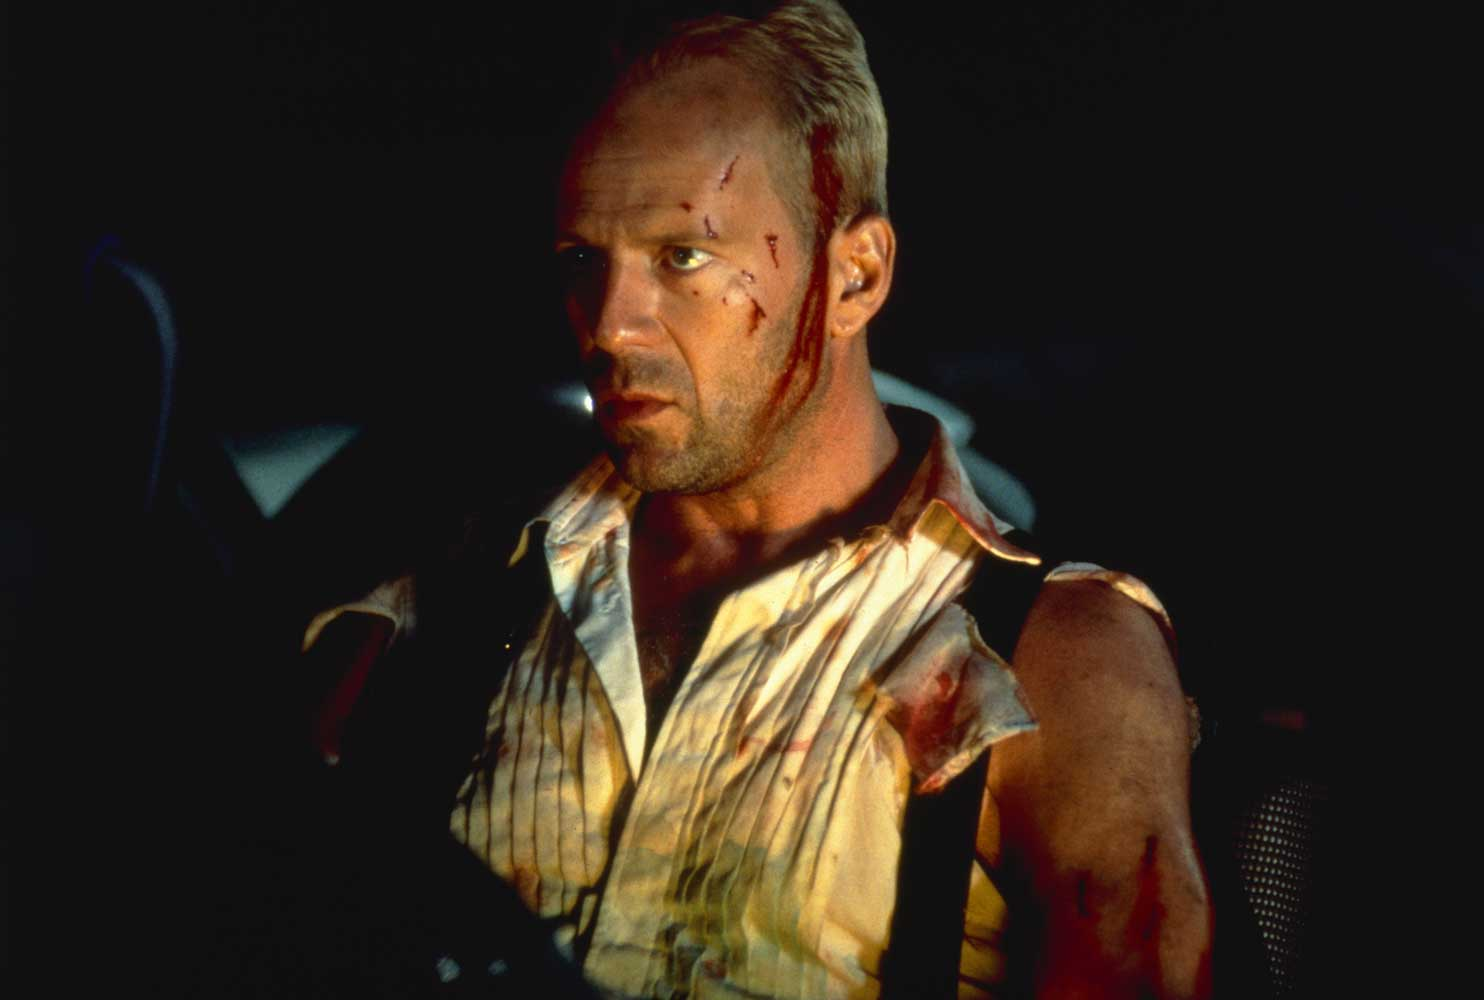 Bruce Willis as Korben Dallas in The Fifth Element (1997)